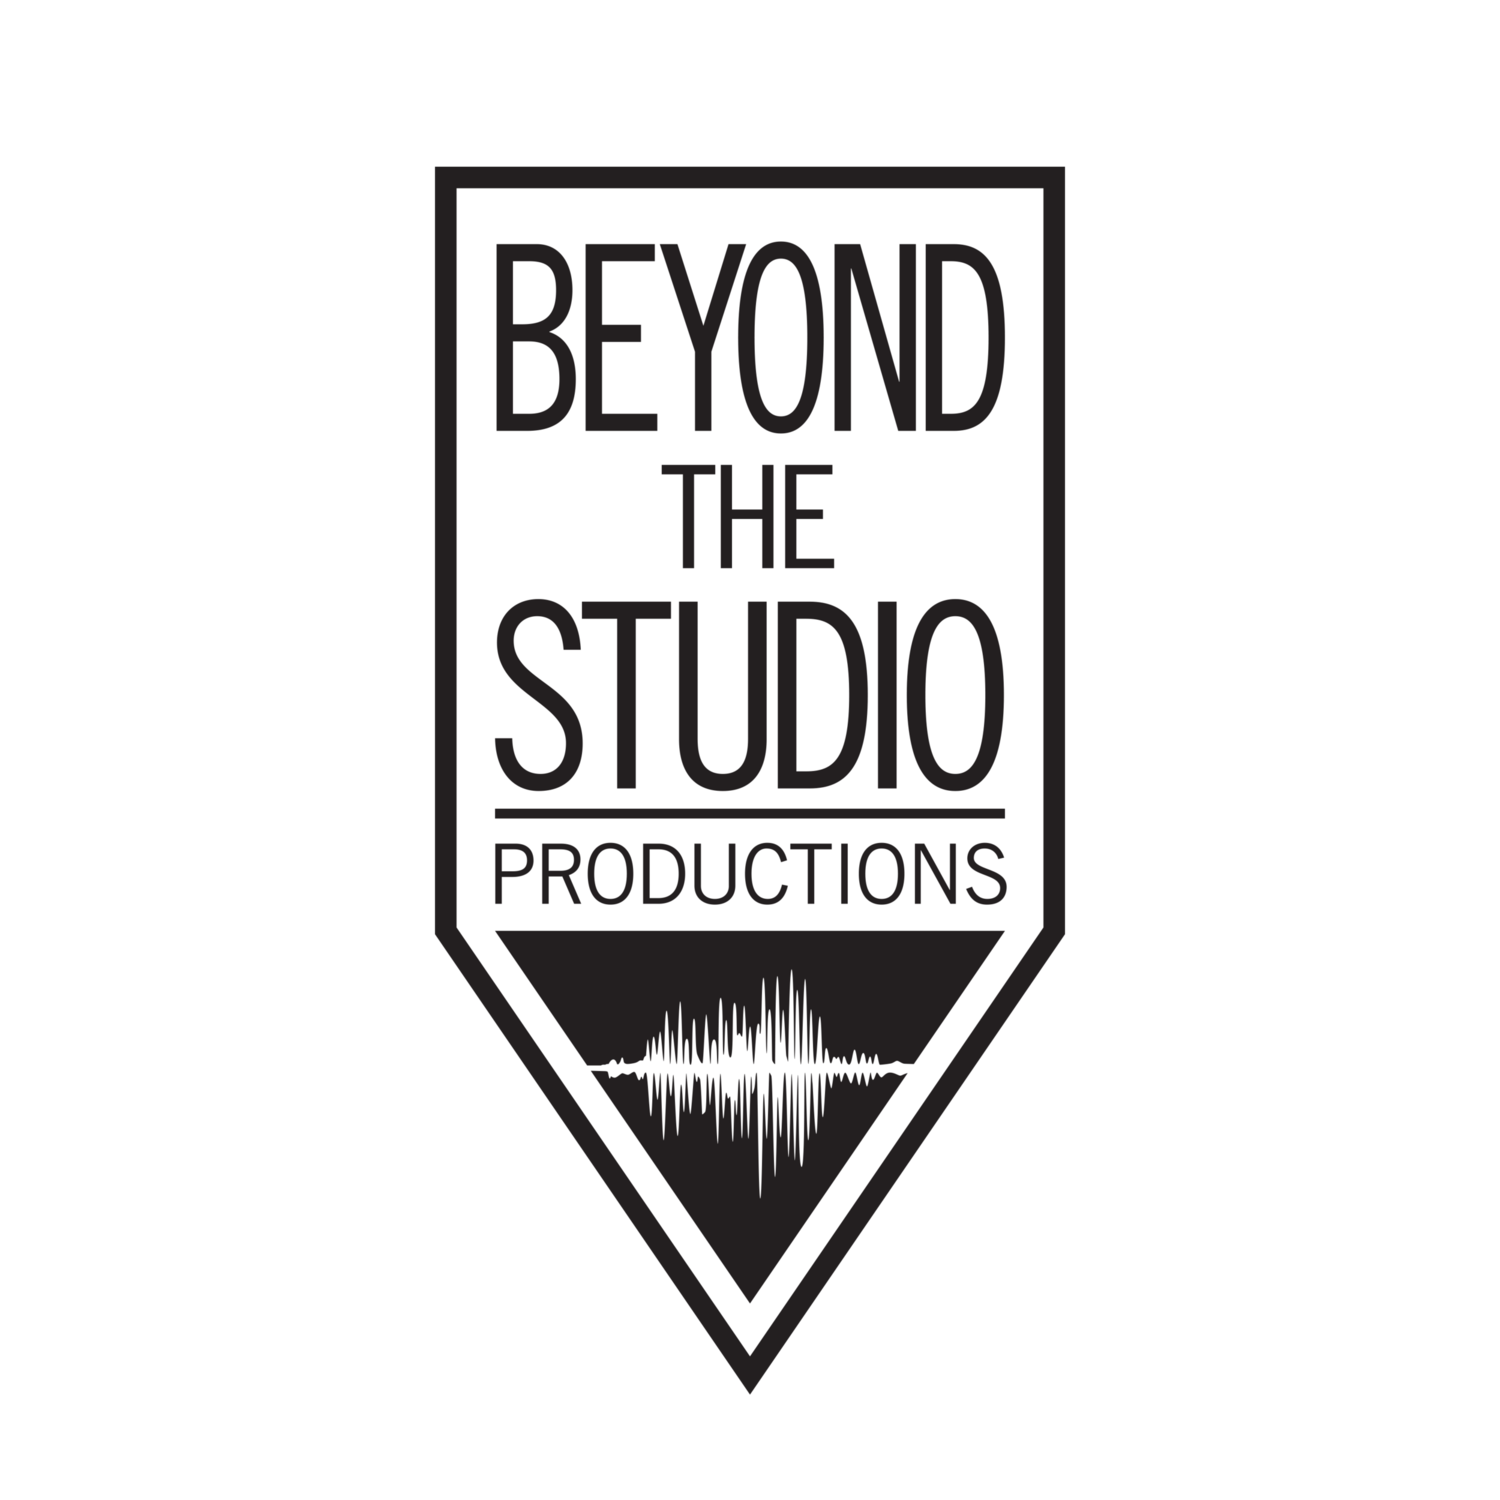 Beyond The Studio Productions